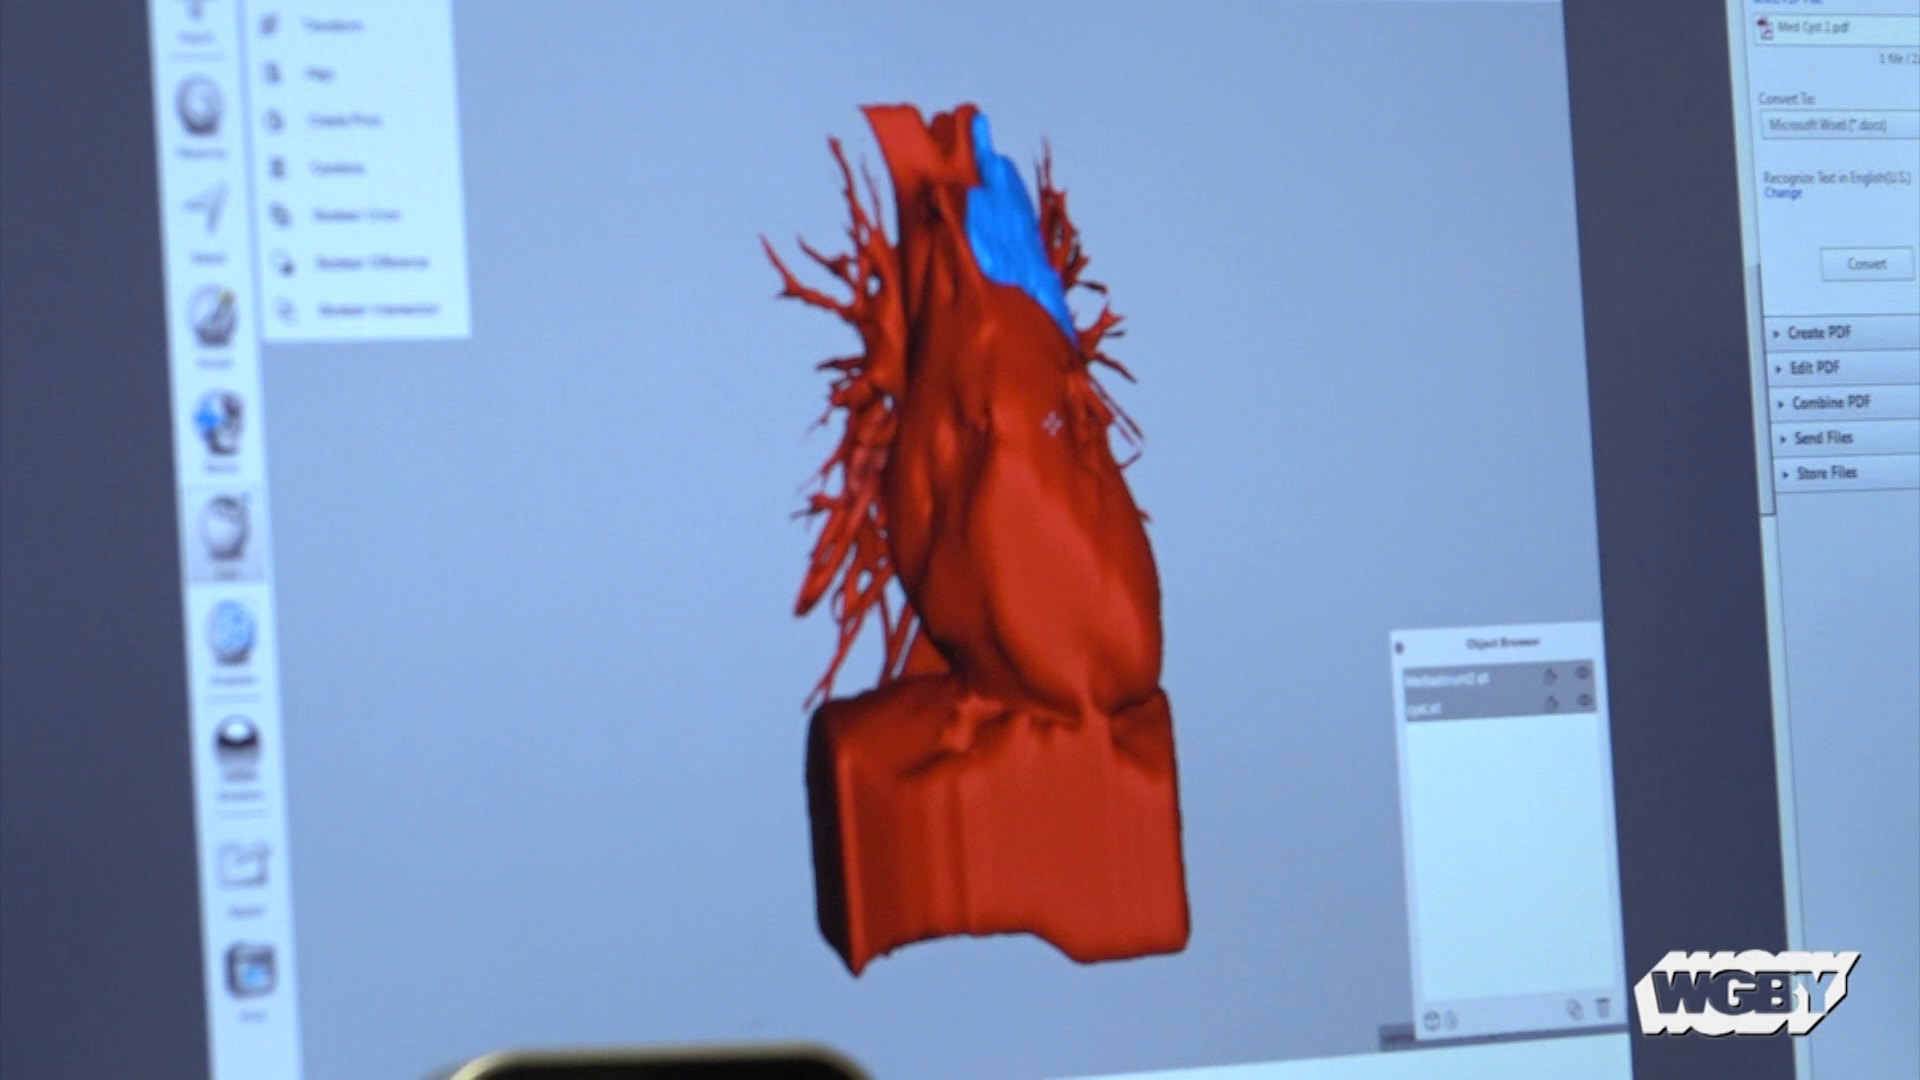 3D Printing Aids Surgeons at Baystate Medical Center